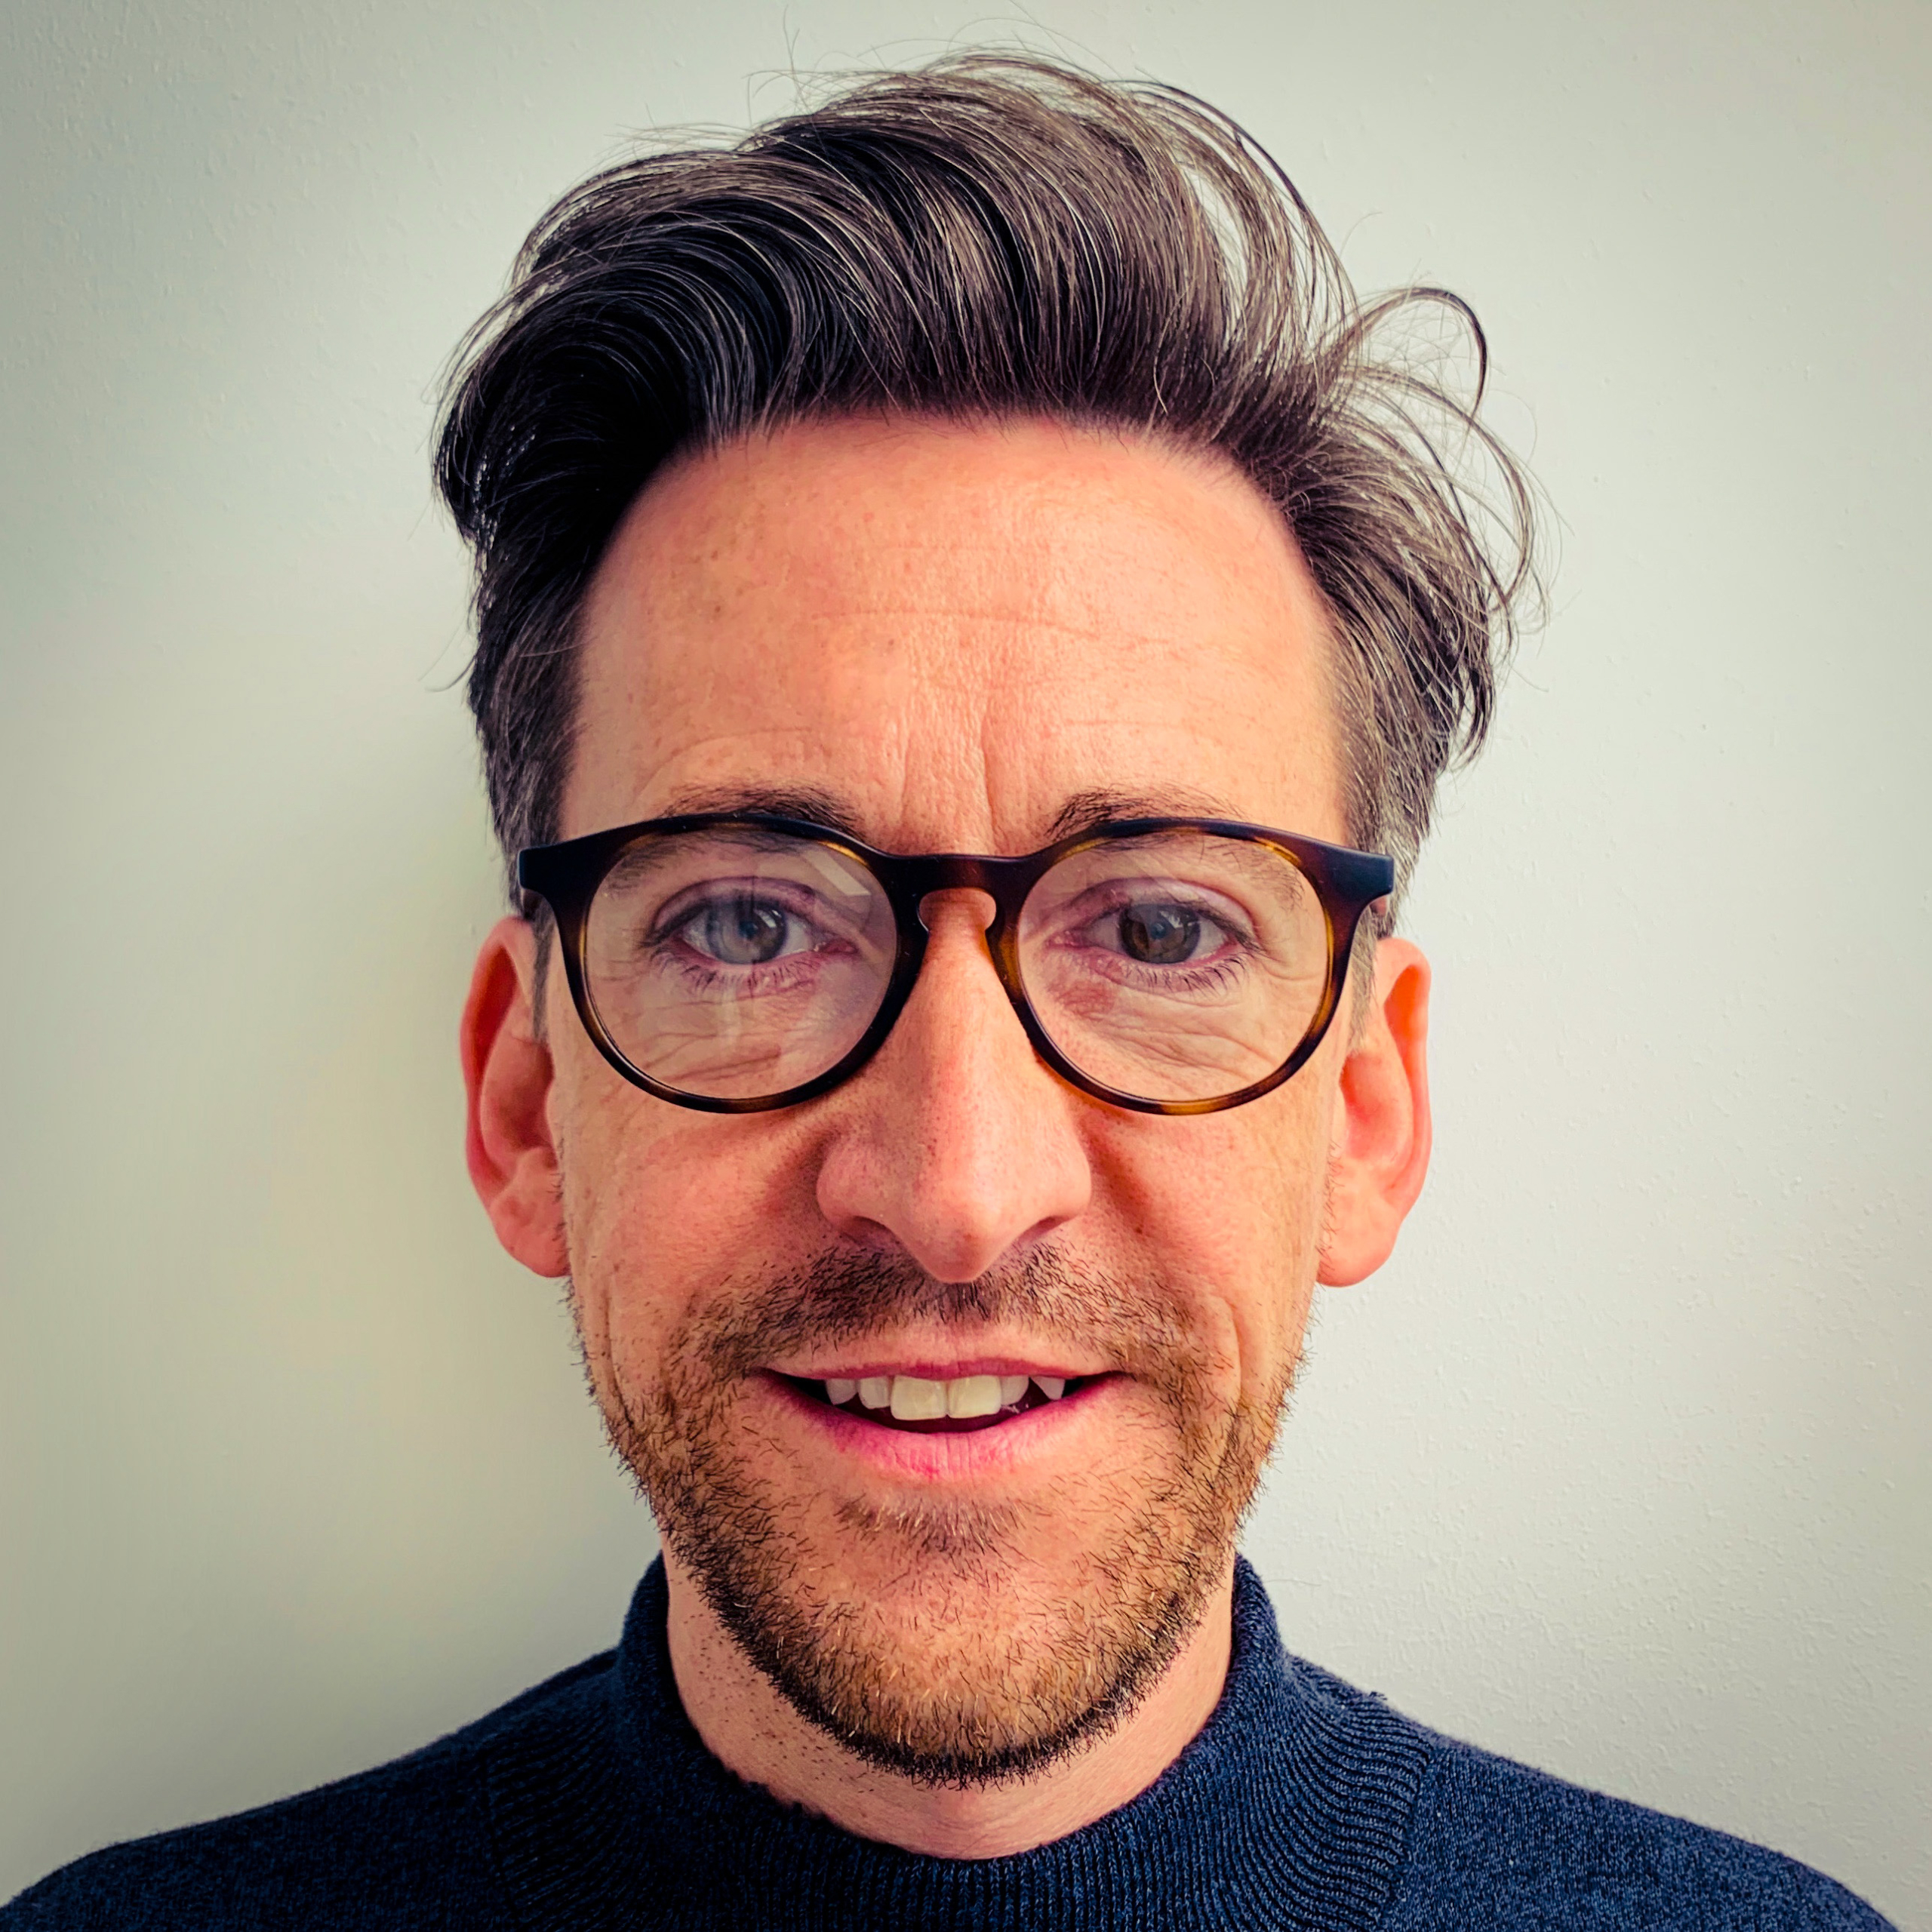 Stuart Almond wearing glasses and smiling at the camera